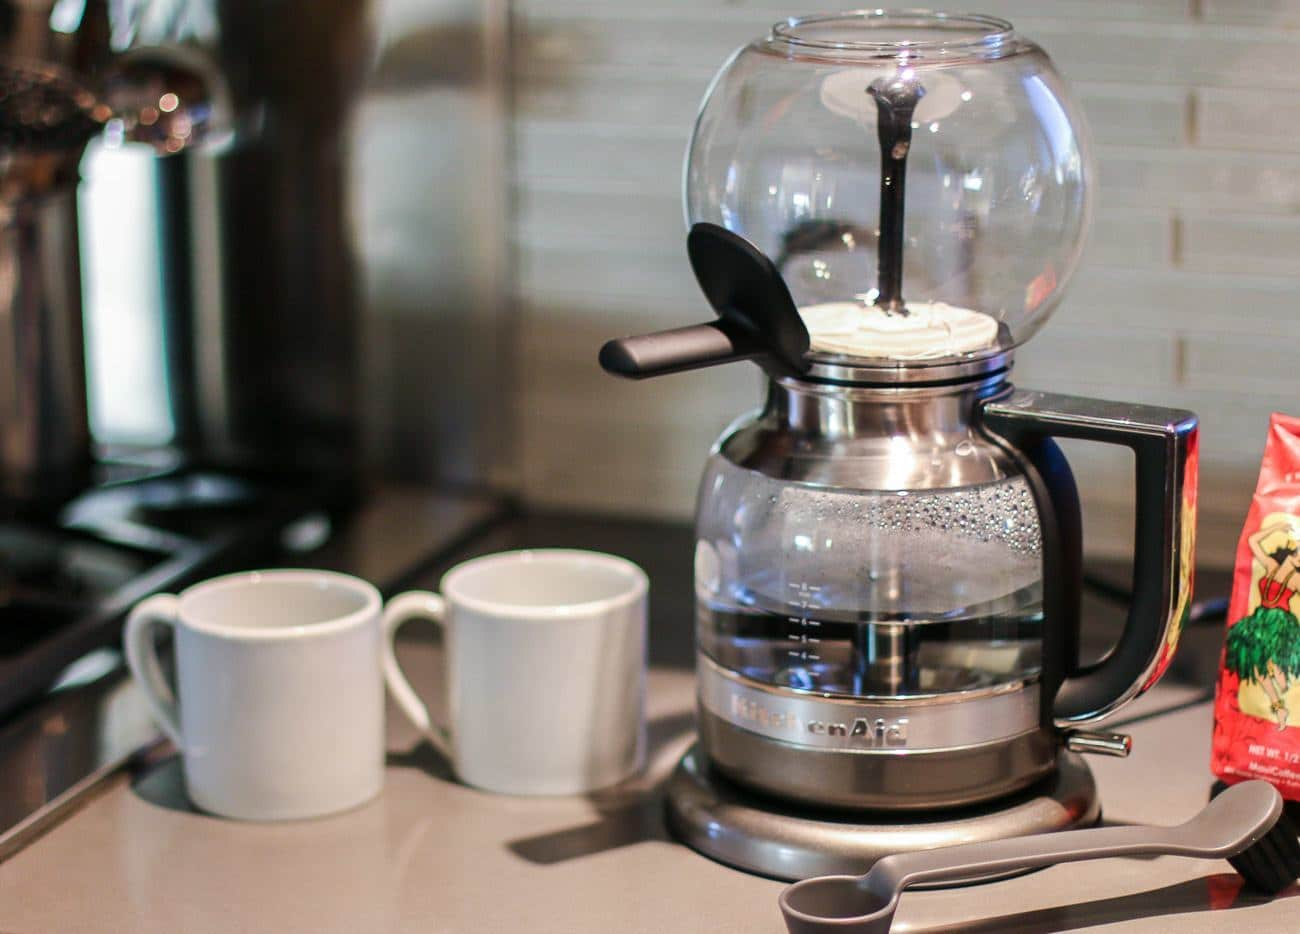 5 Reasons Why Siphon Coffee Makers Are Best La Jolla Mom